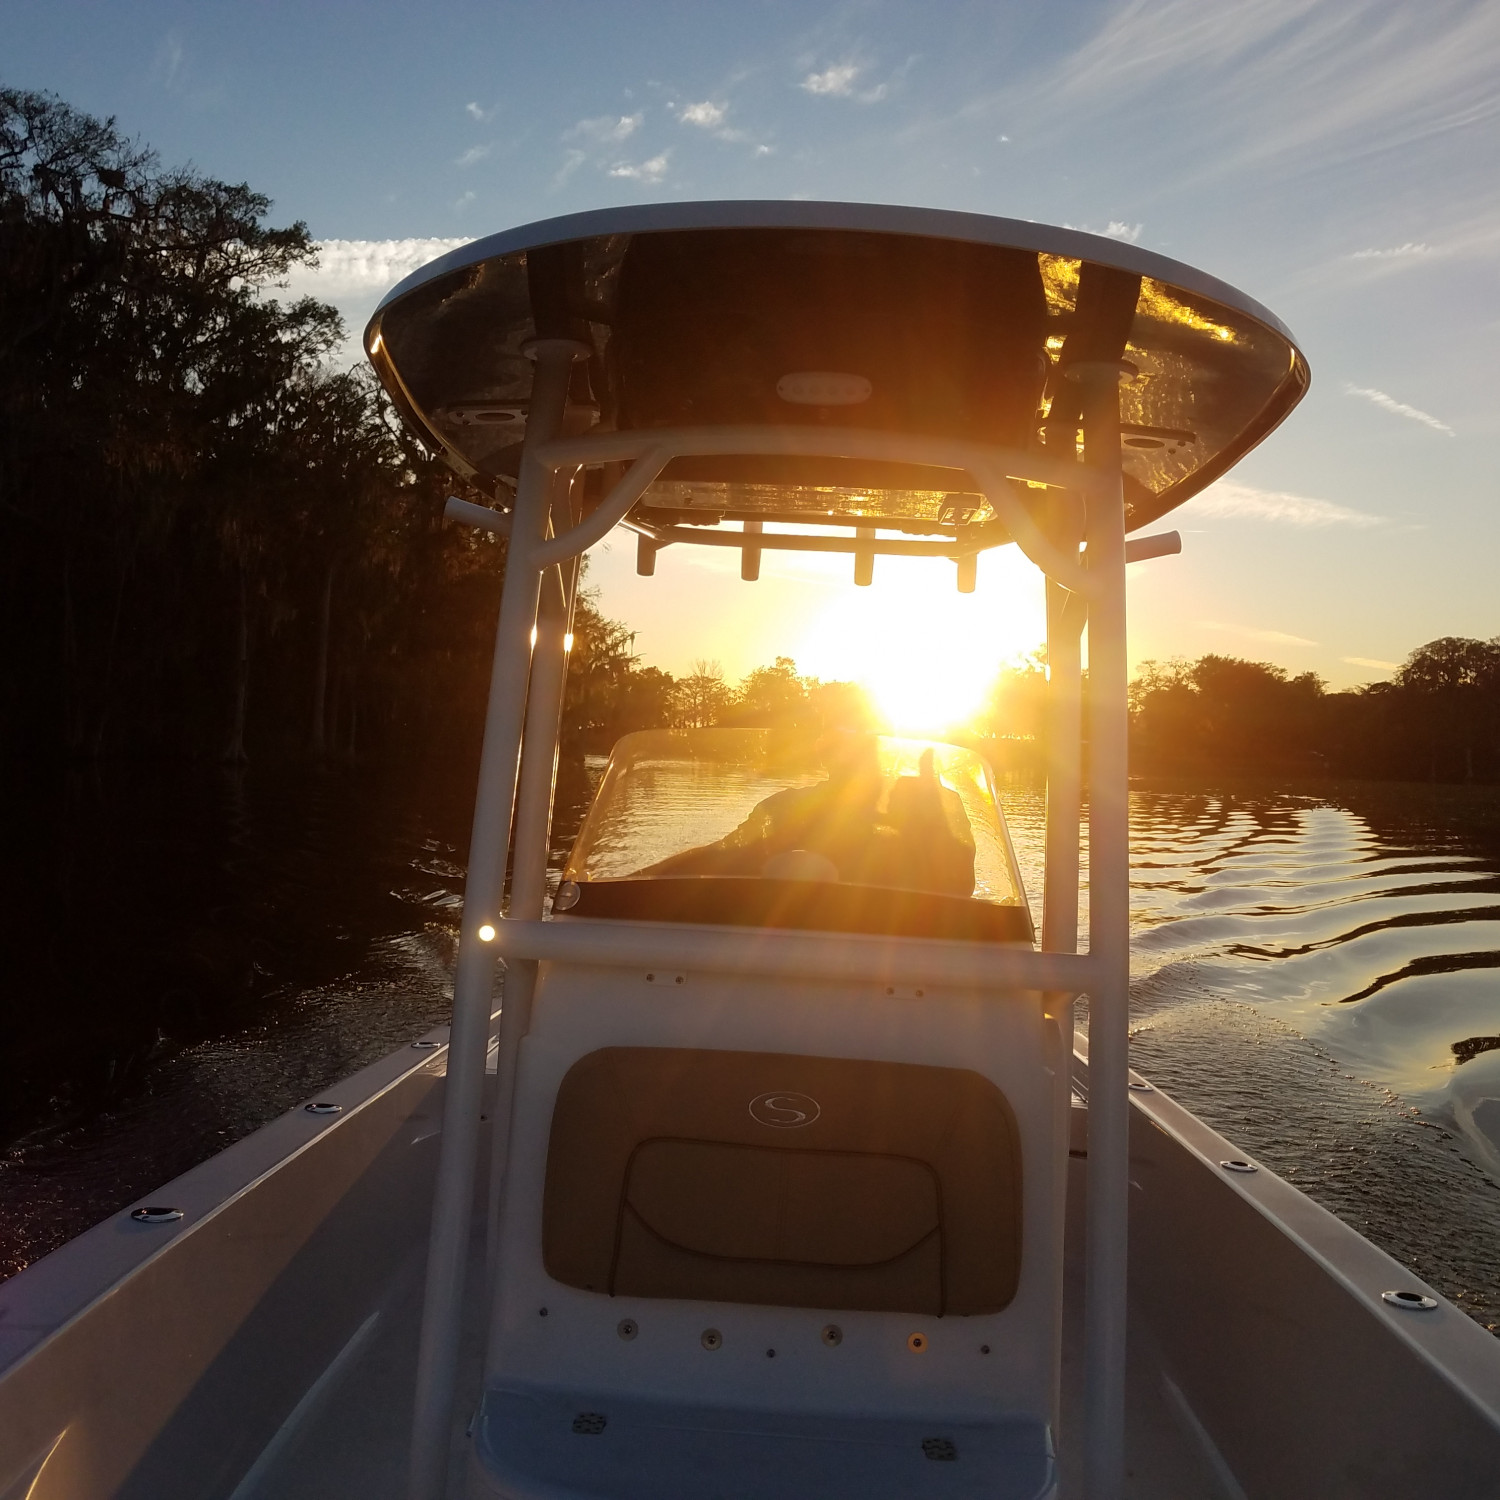 Title: Evening cruise - On board their Sportsman Masters 247 Bay Boat - Location: Lake County, Florida. Participating in the Photo Contest #SportsmanMarch2018